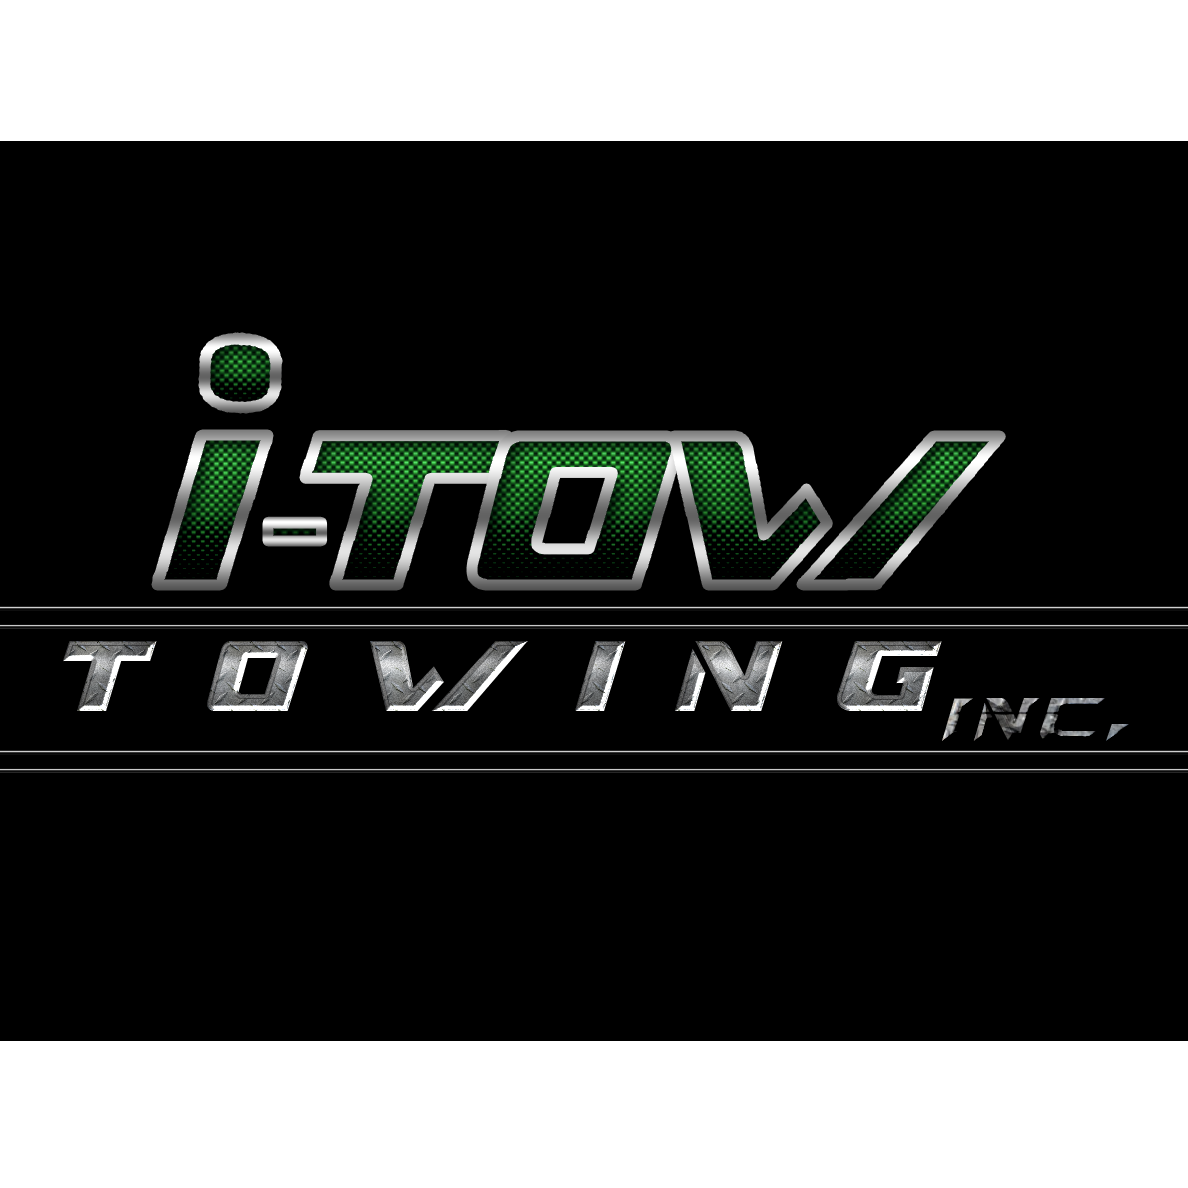 I-Tow Towing - Corona, NY - Auto Towing & Wrecking